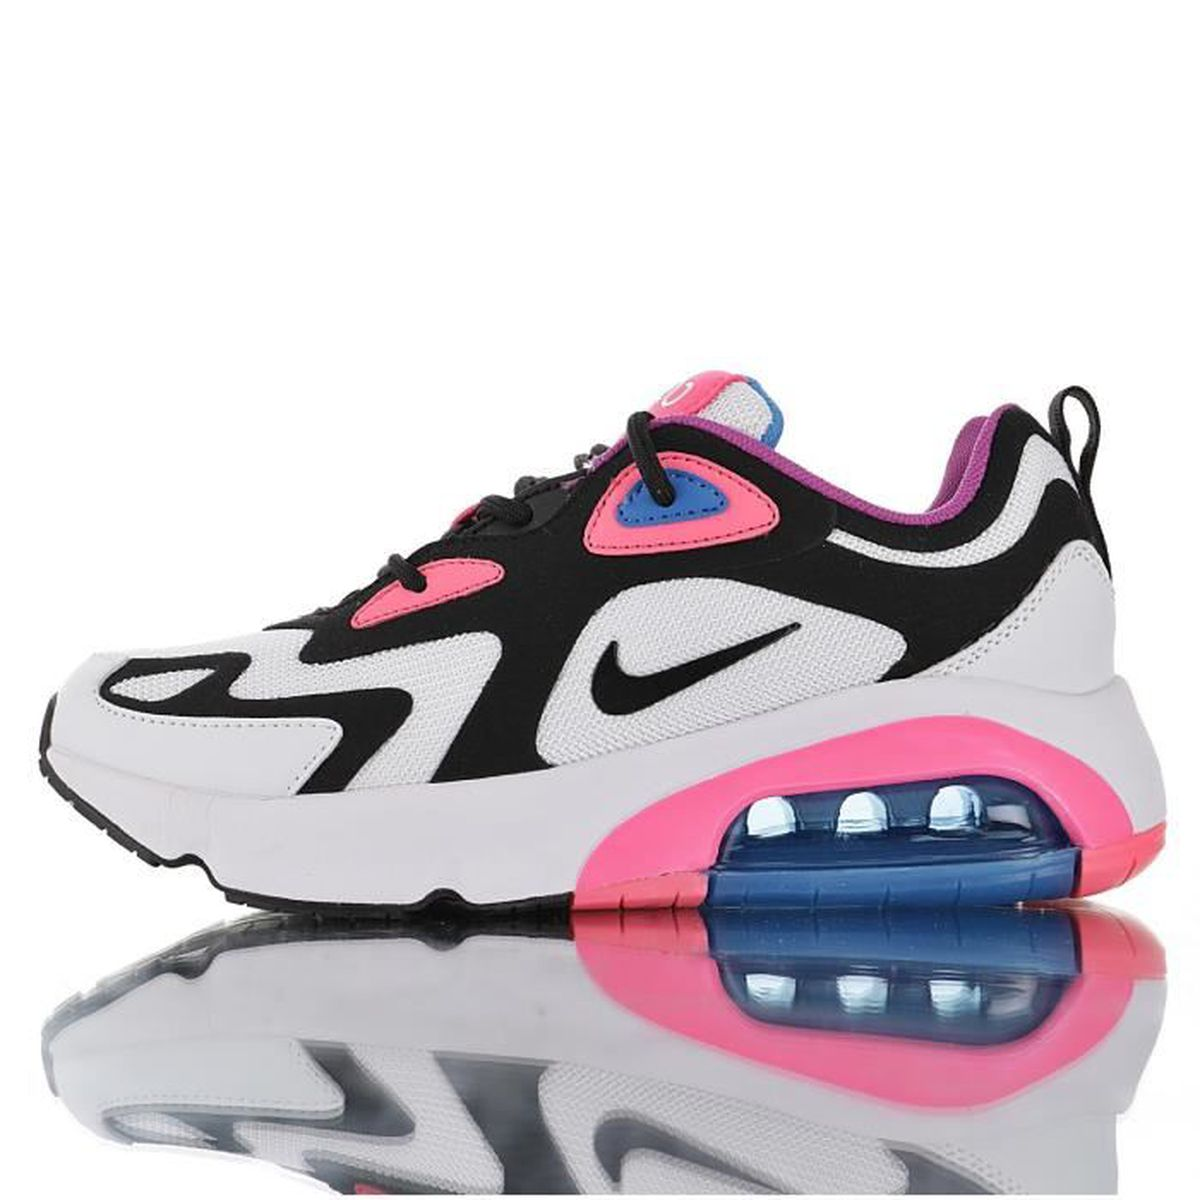 Baskets Nike Air Max 200 Femme Rose Rose Rose - Achat ...